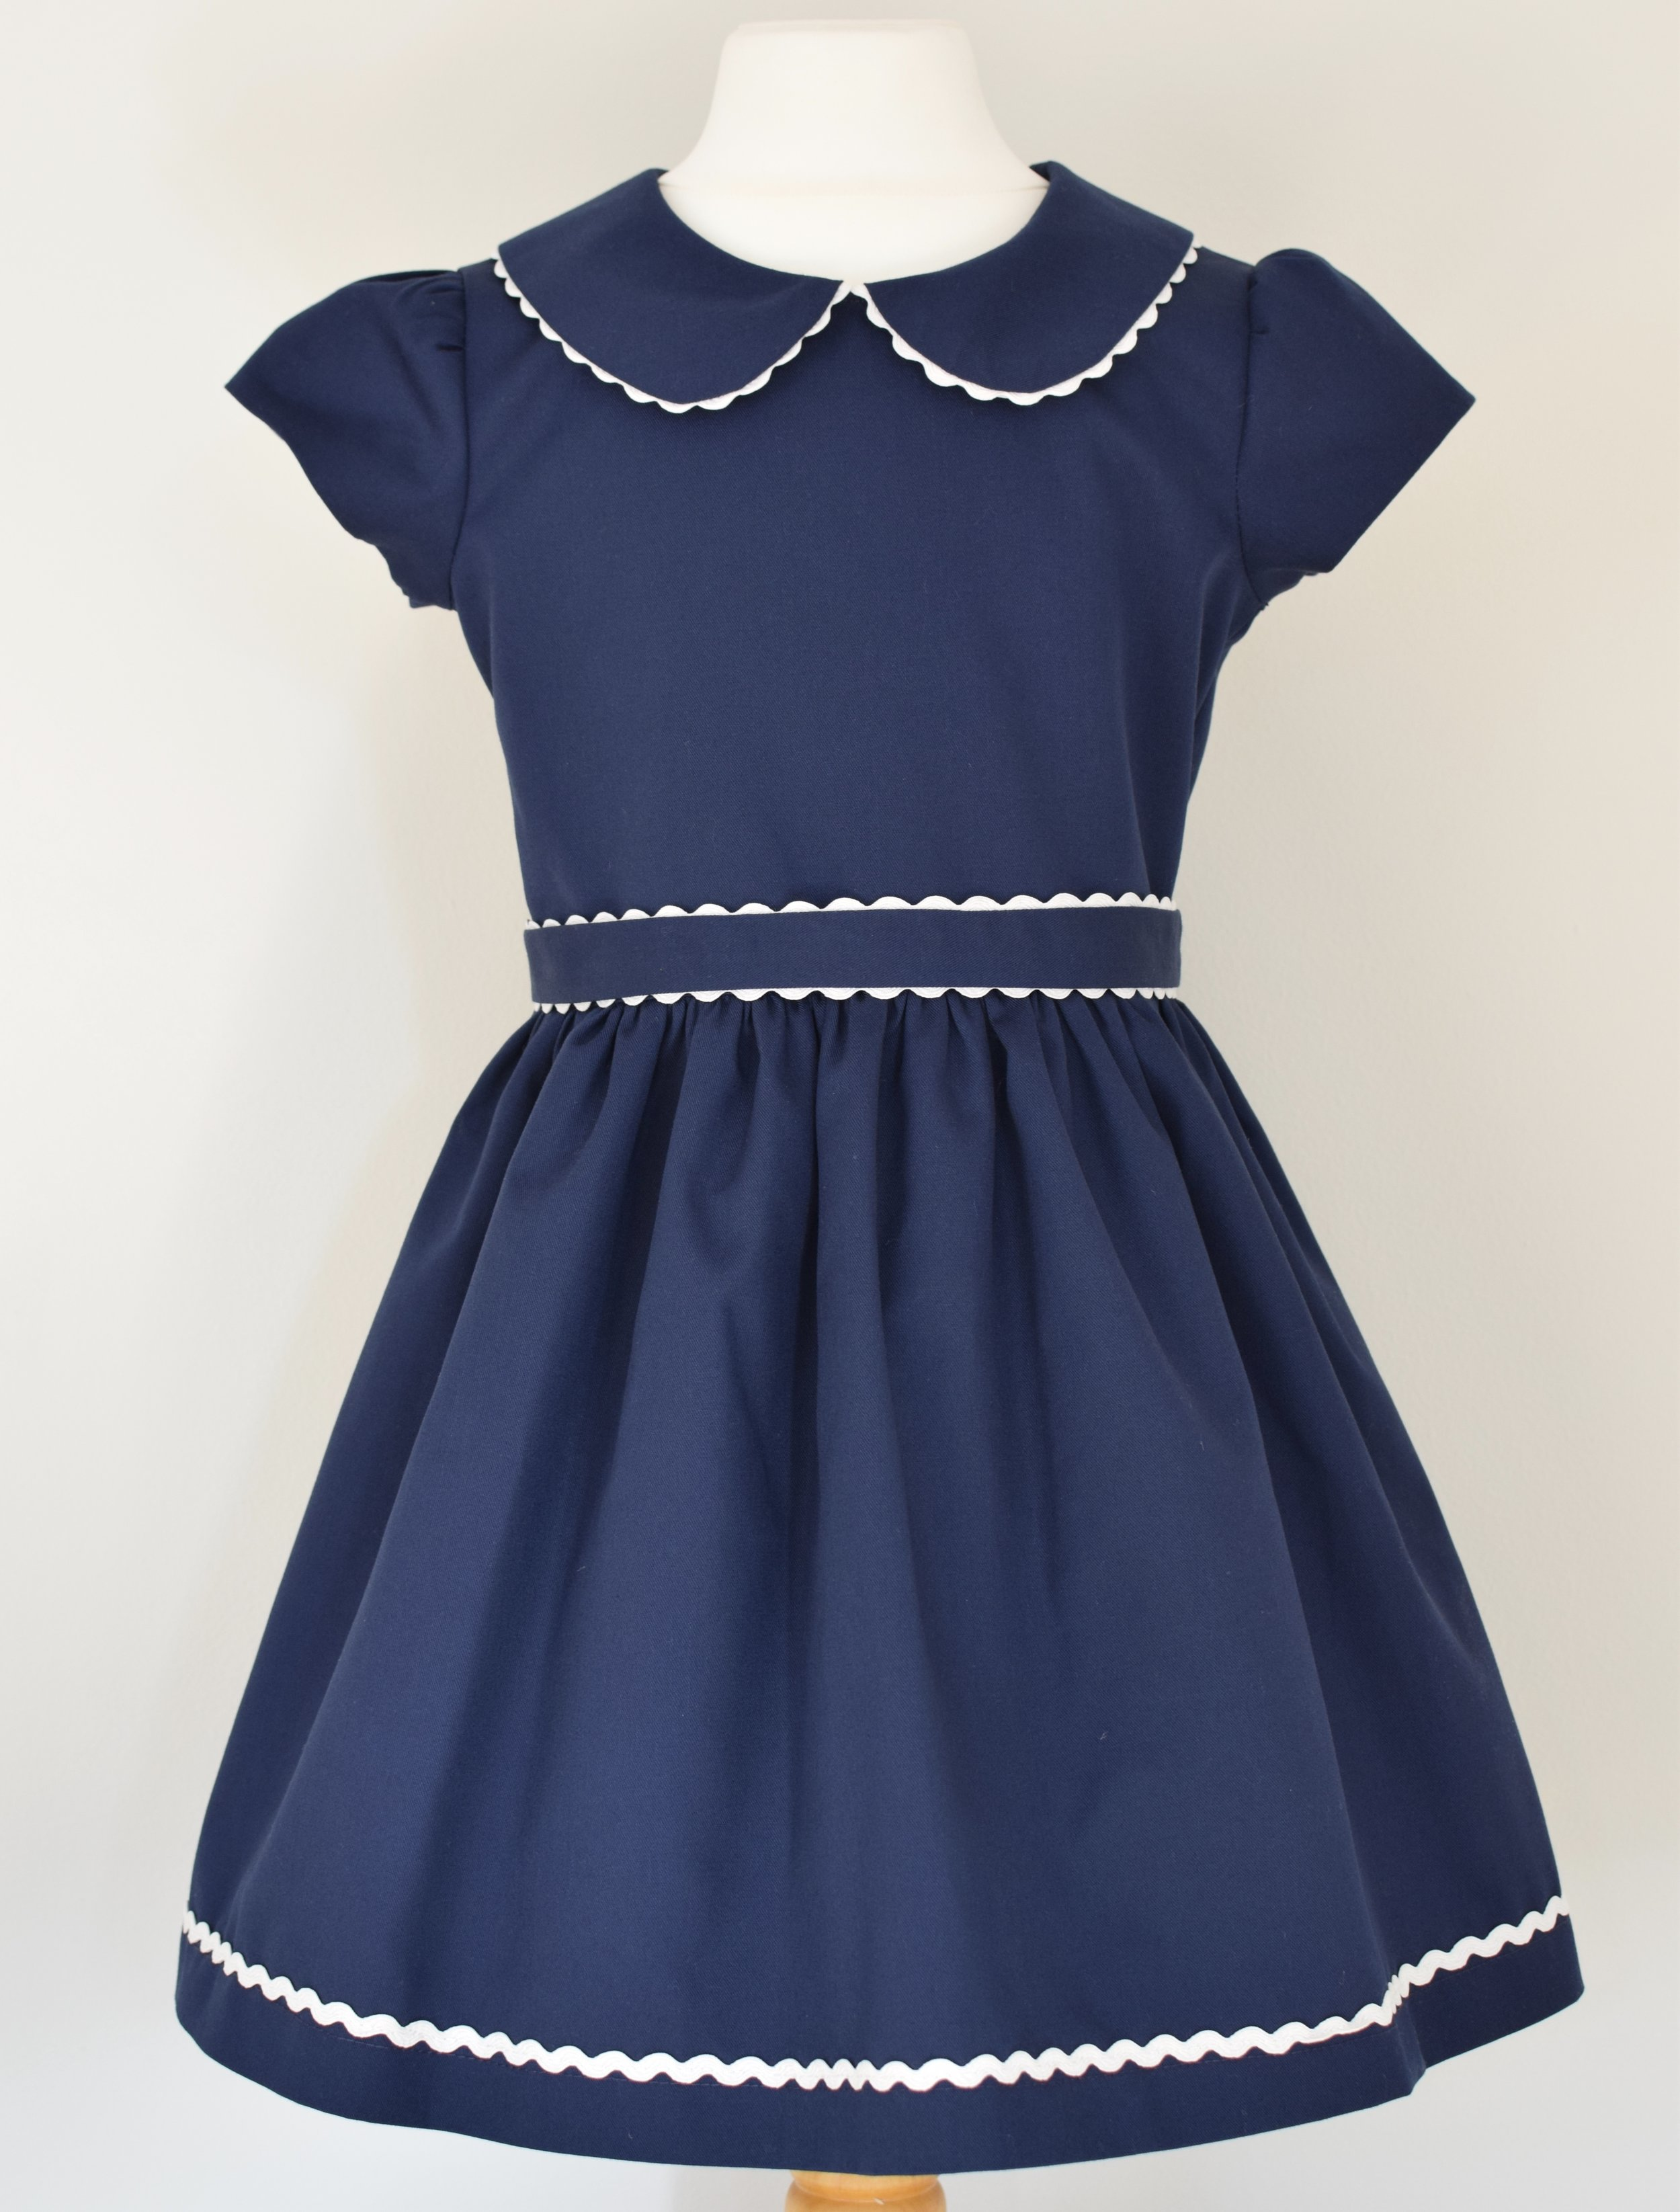 Navy twill party dress   A classic navy, cotton twill party dress with: cap sleeves,Peter Pan collar,fully lined with a concealed zip at the back and rick rack ribbon details.  Available in sizes 3y, 4y and 5y  £43